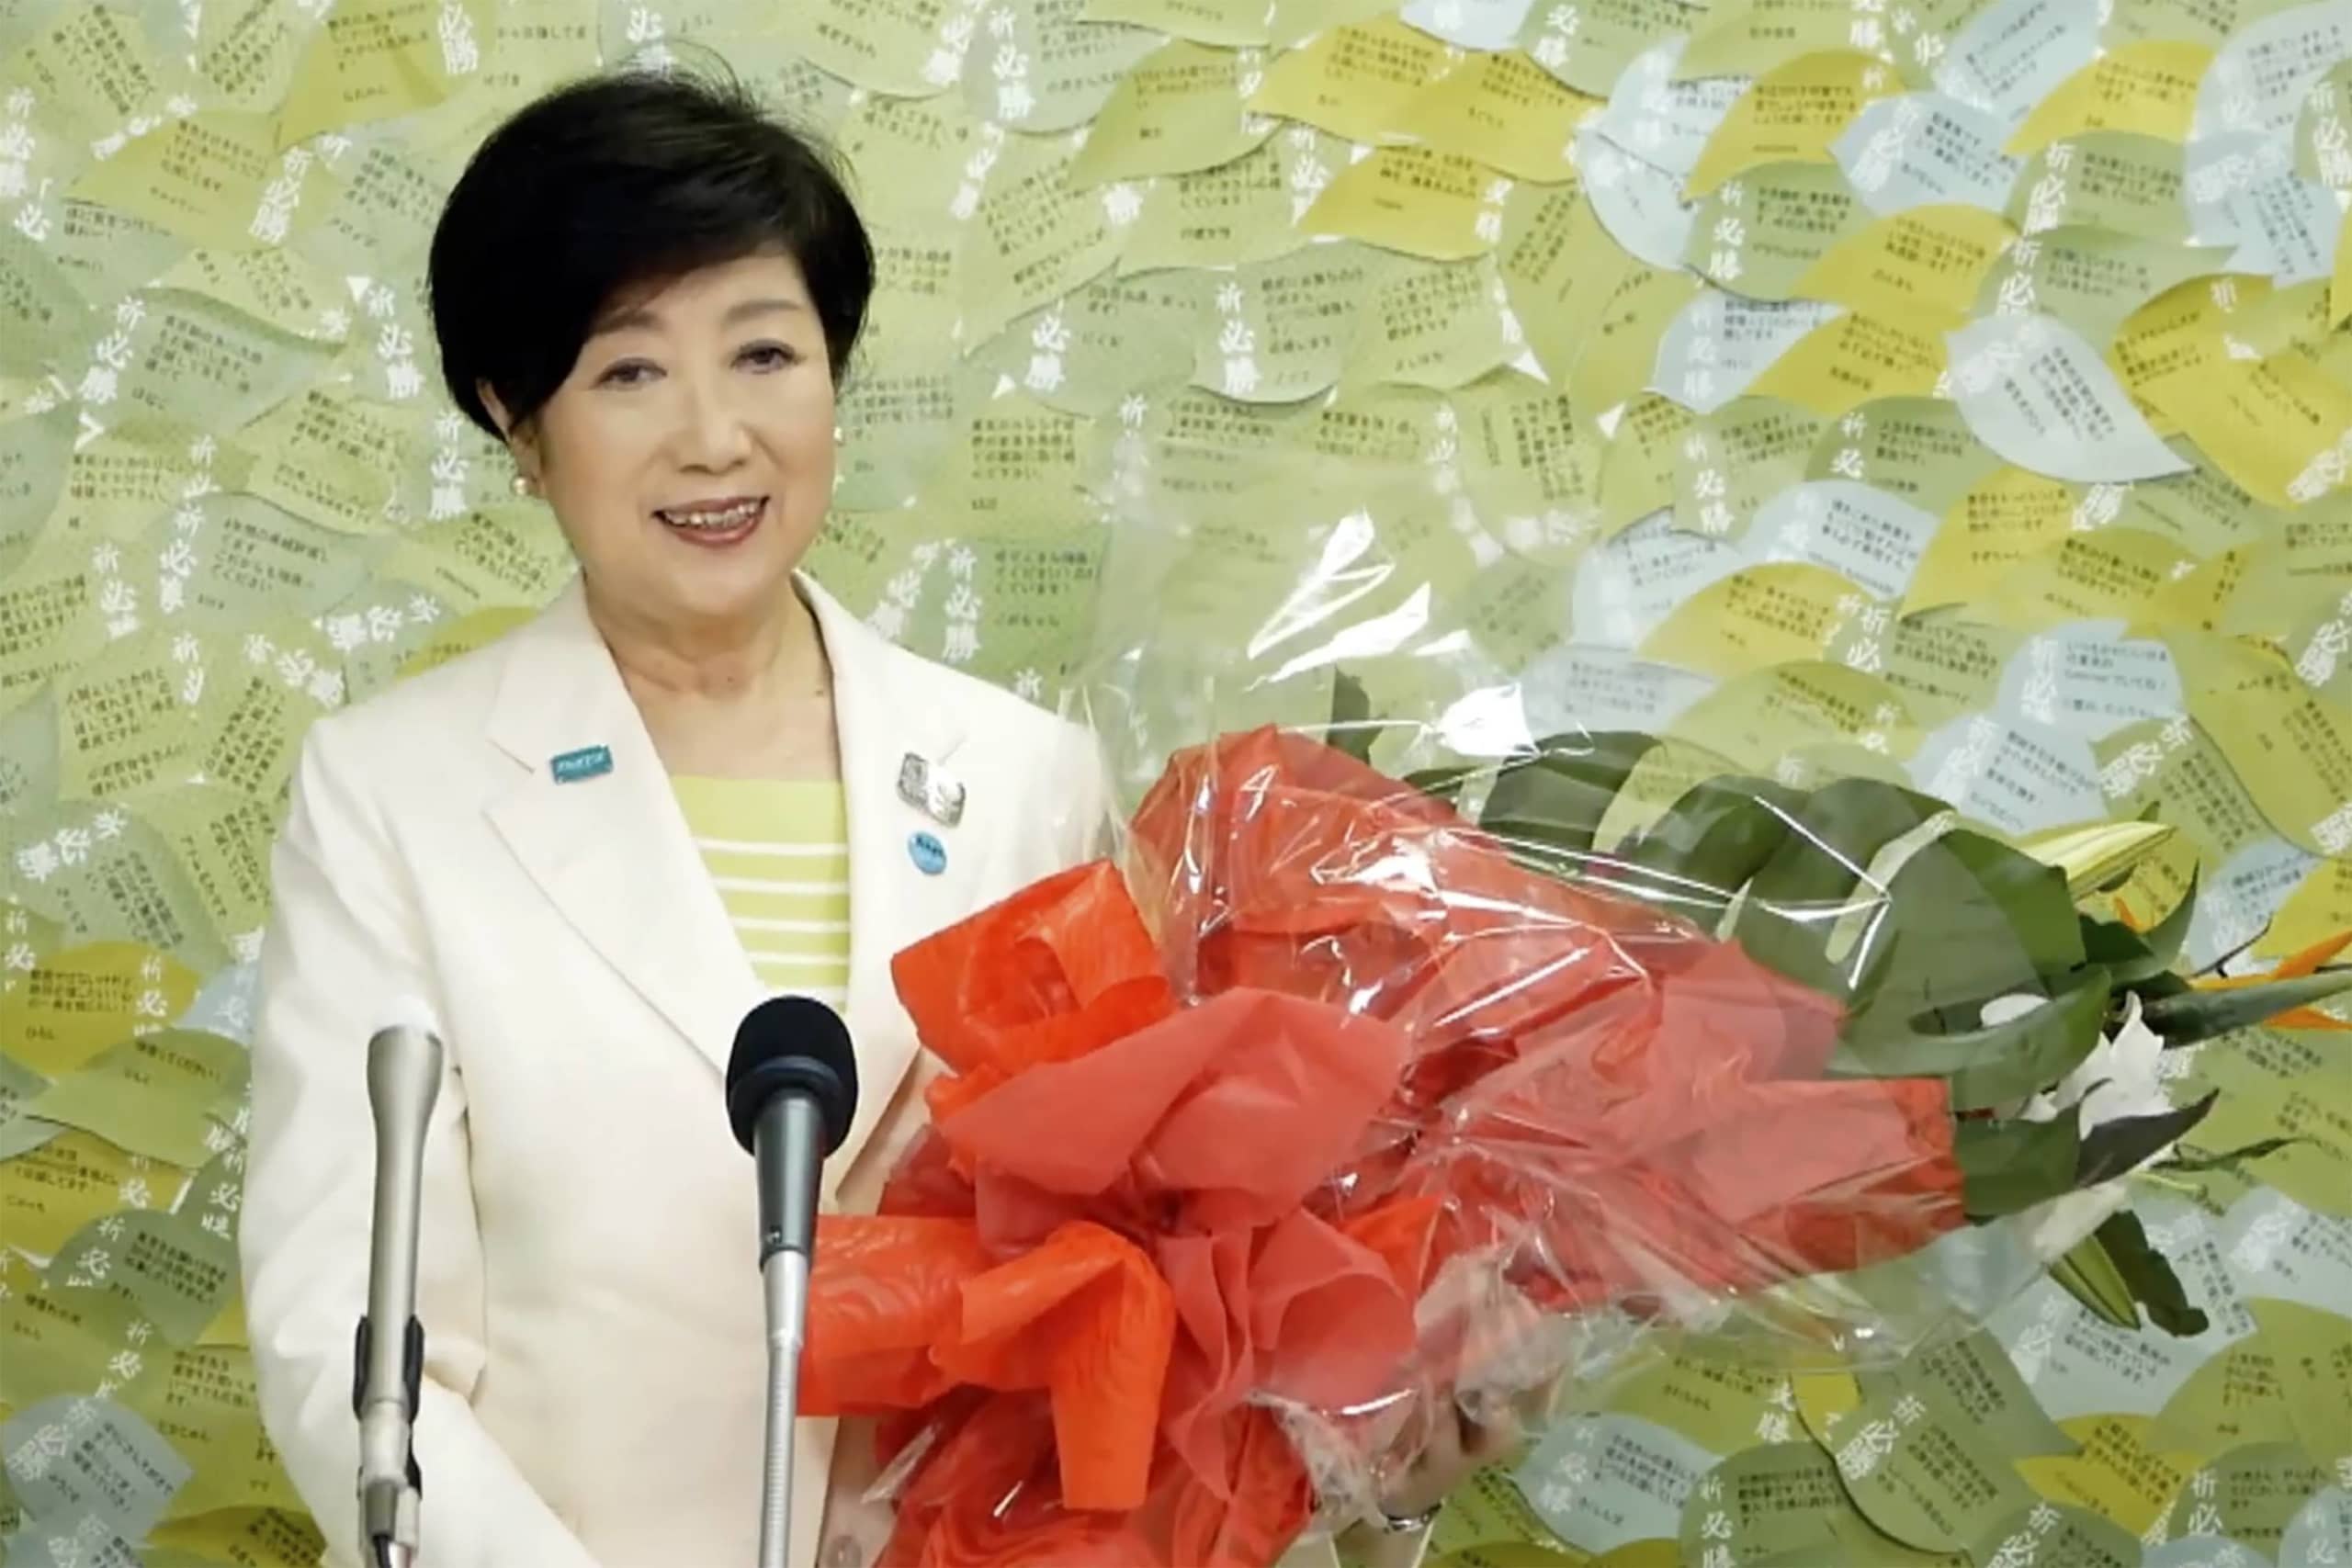 A divided opposition and the coronavirus crisis helped propel Tokyo Gov. Yuriko Koike to victory in Sunday's election. | KOIKE YURIKO OFFICIAL CHANNEL / VIA AP